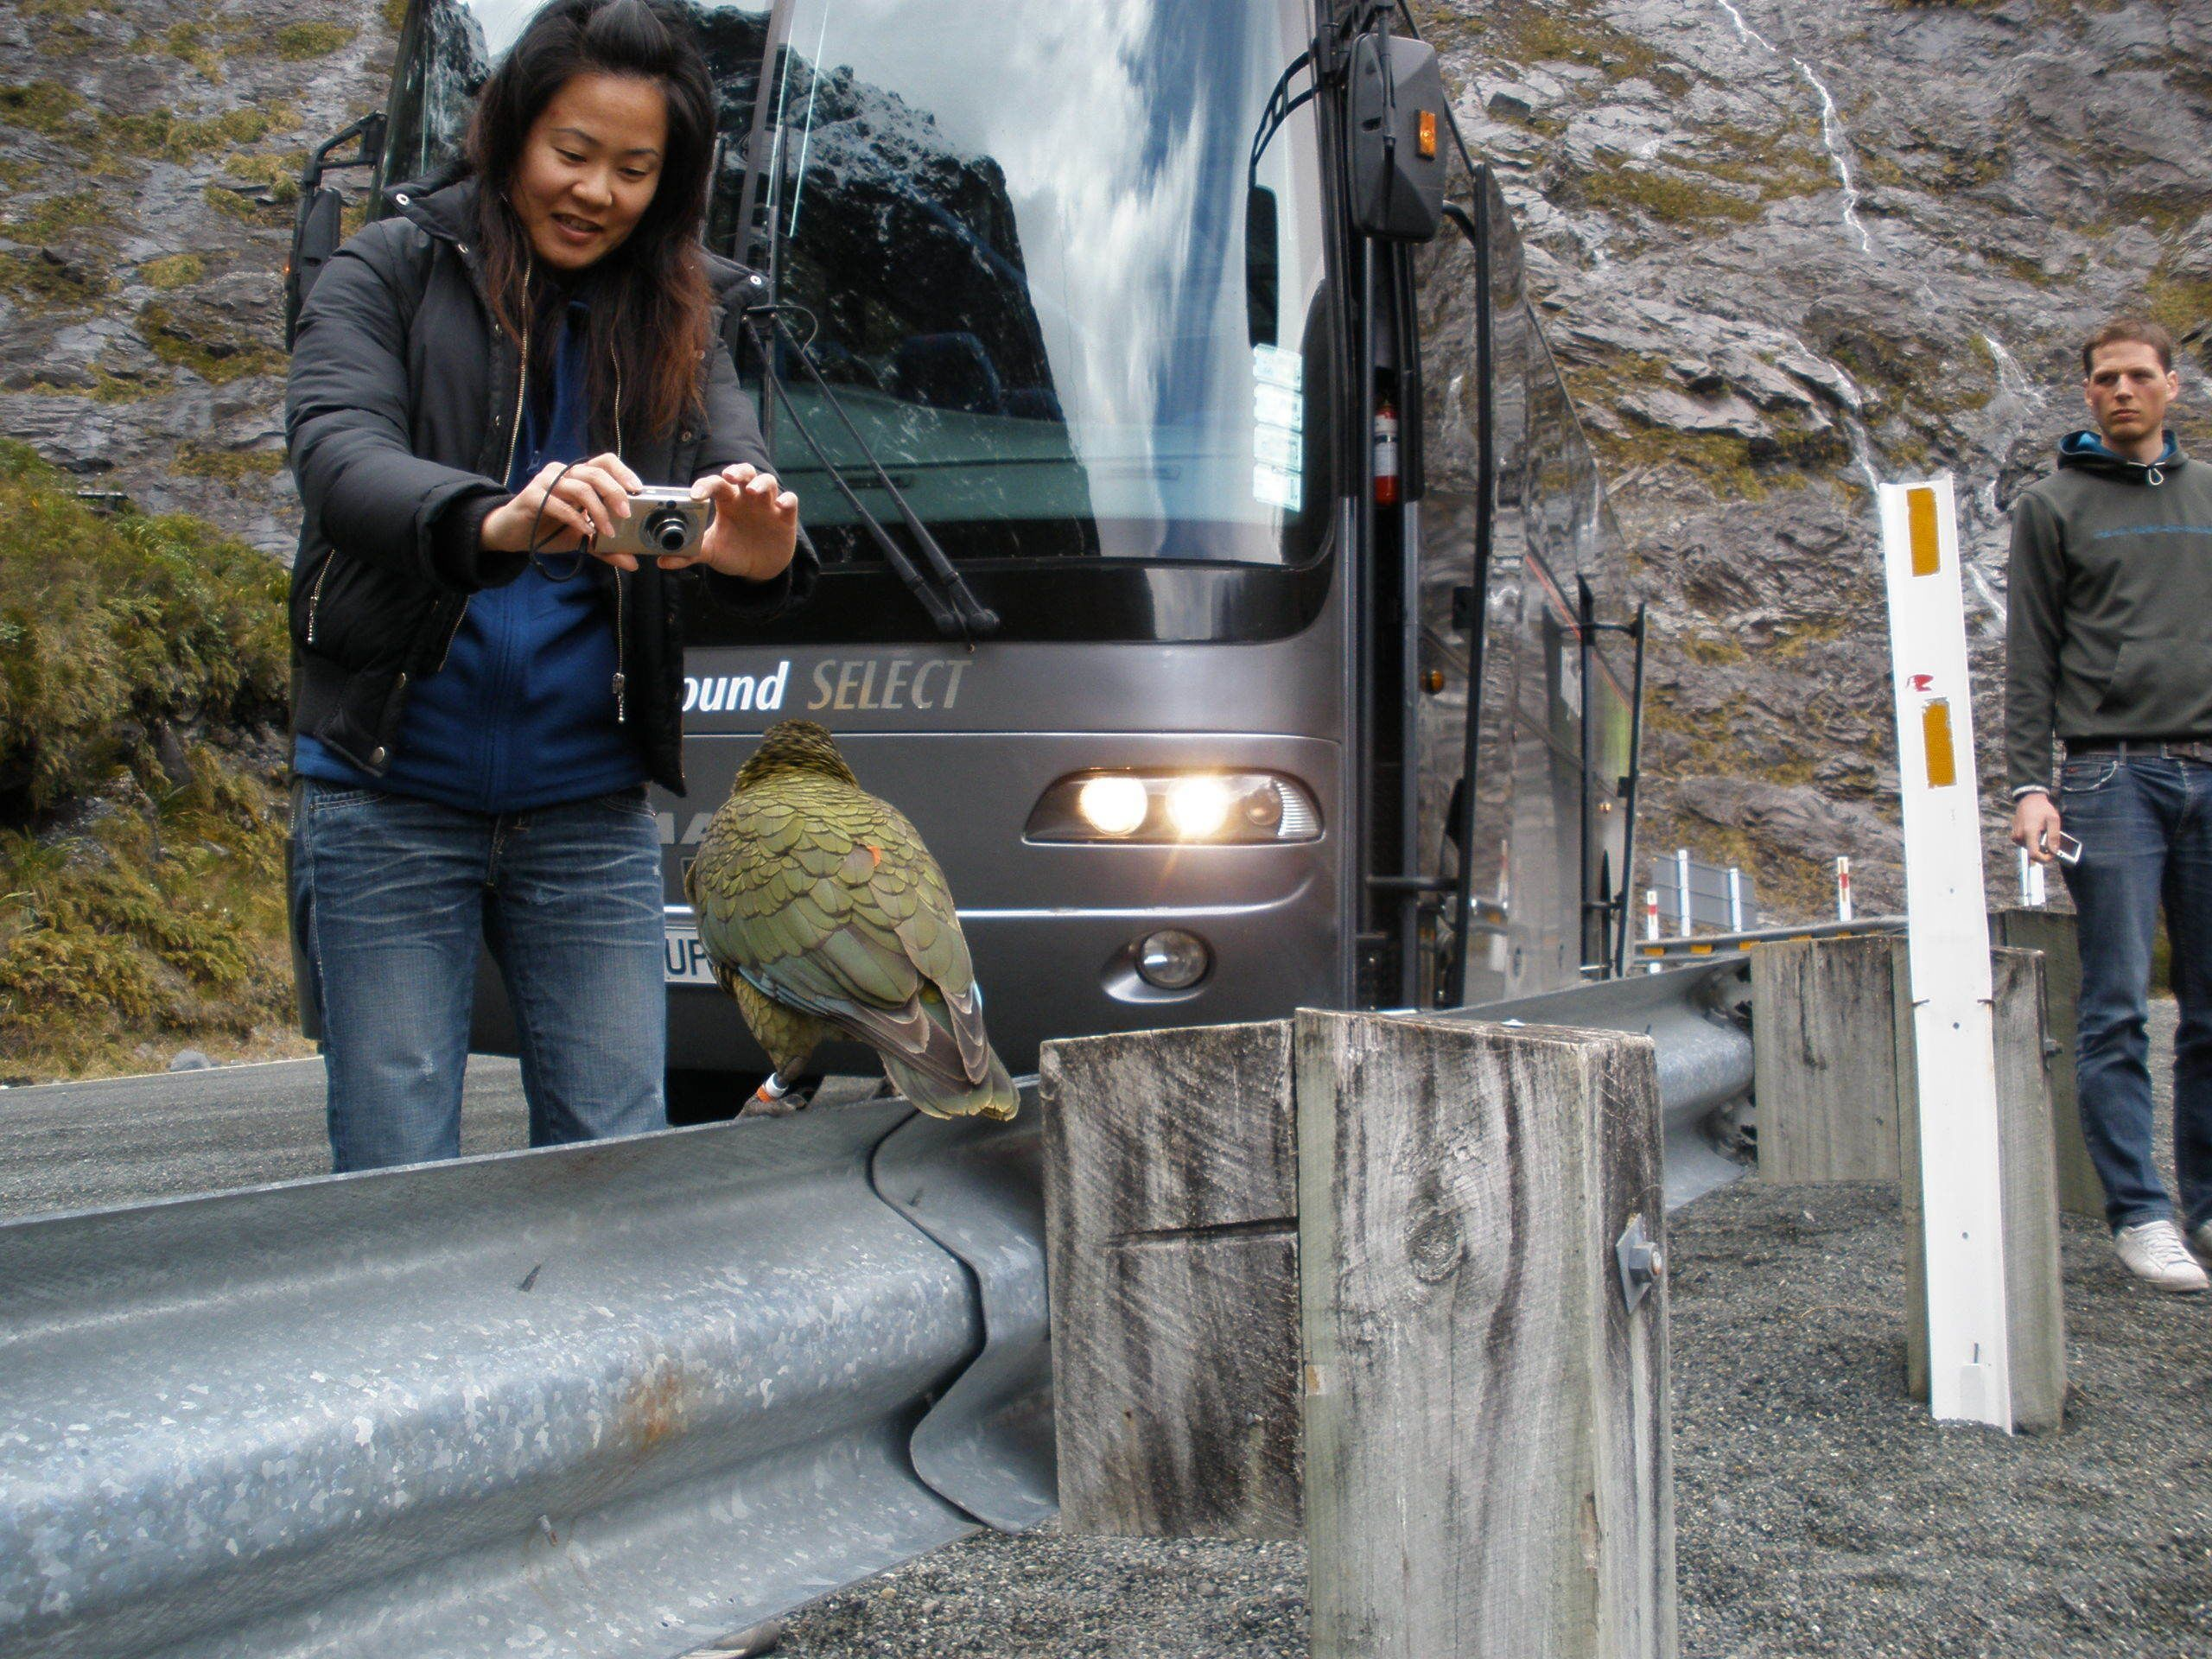 Luxury Small Coach to Milford & Nature Milford Sound Cruise